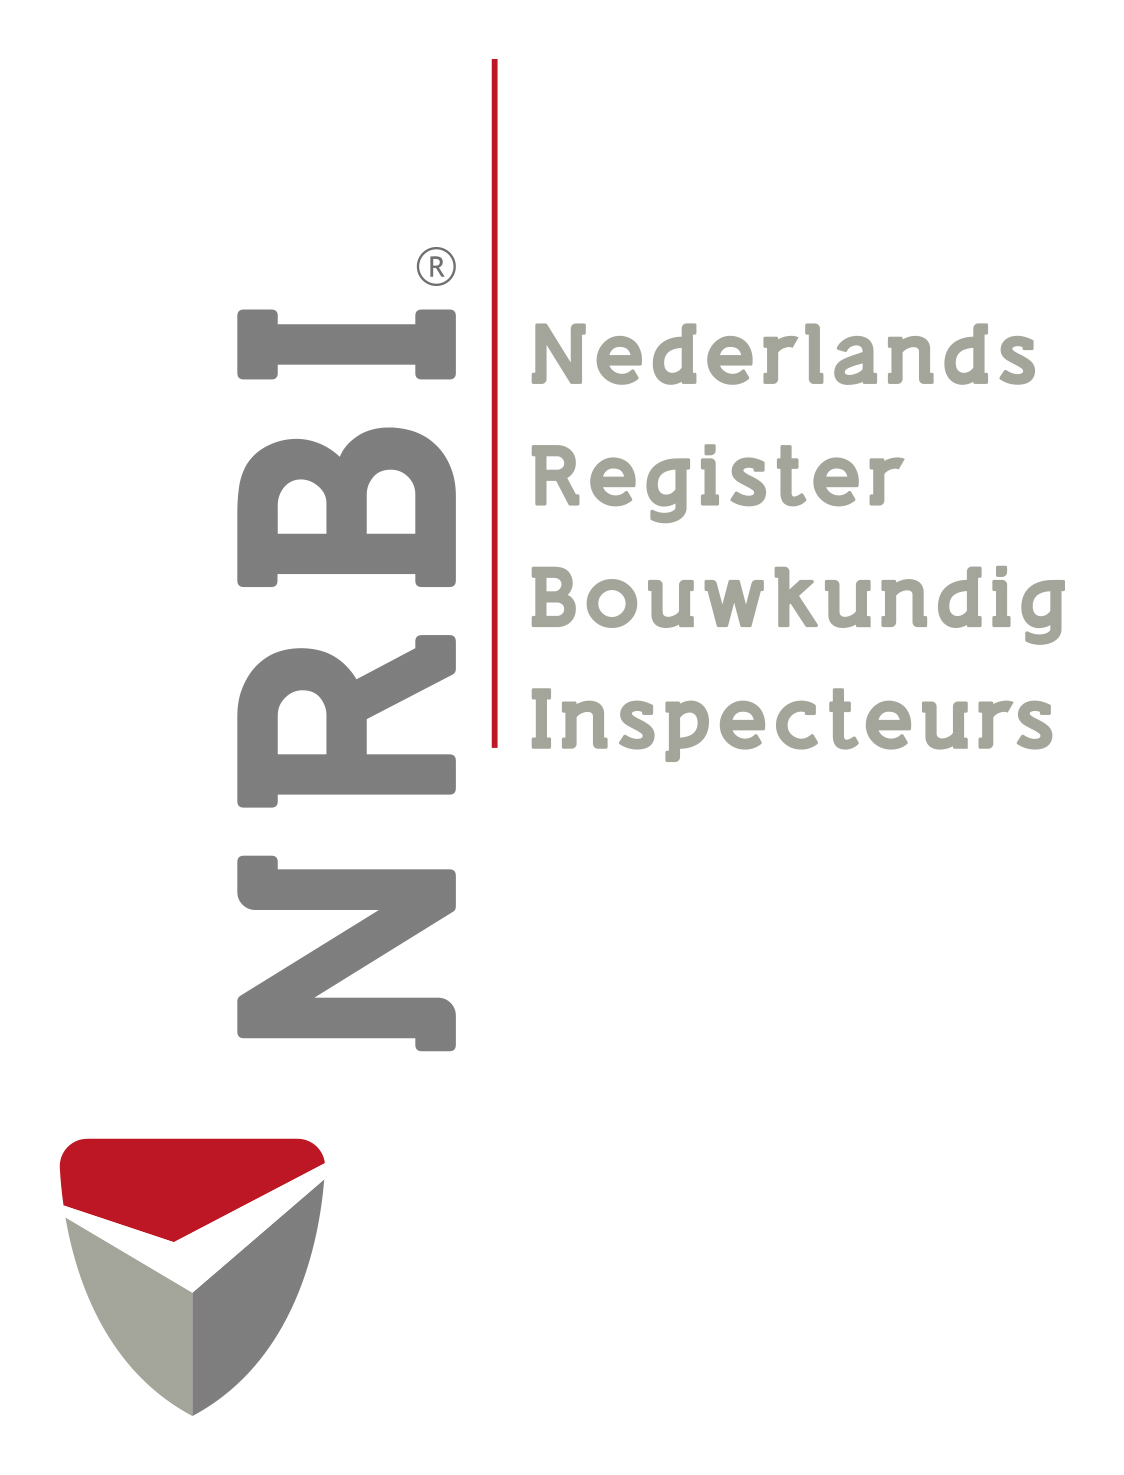 Nederlands Register bouwkundig Inspecteurs